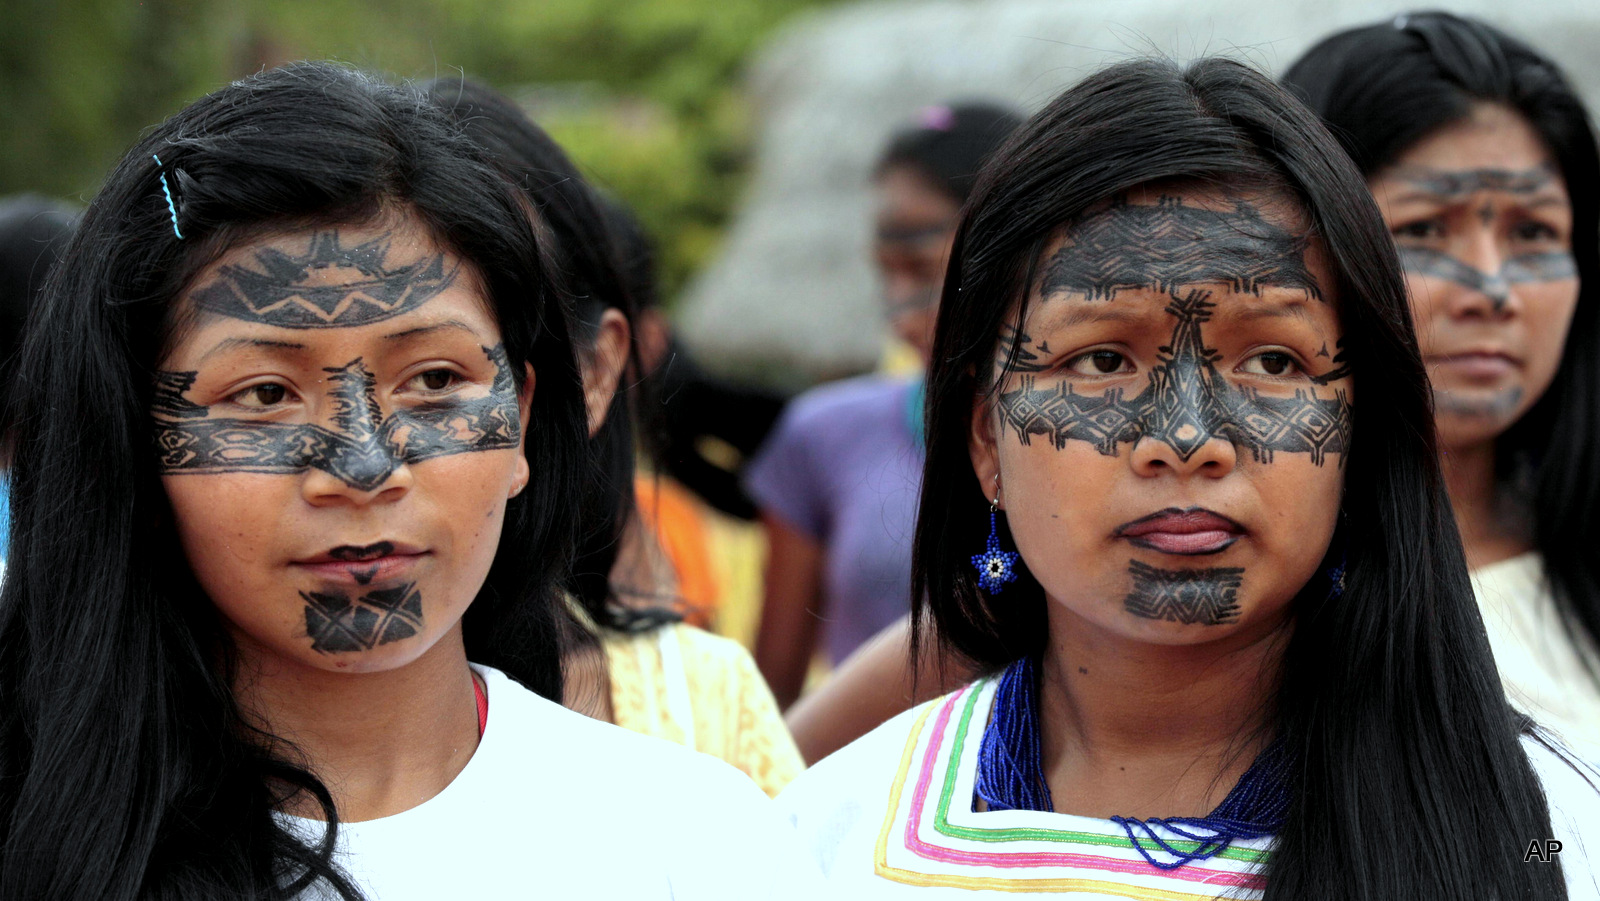 Sarayaku women attend a ceremony where the Ecuadorian Government offered a public apology that came as part of a ruling by the Inter-American Human Rights Court which found that the government allowed for oil exploration in Sarayaku lands without their consent.  Indigenous people will have access to the courts as part of a recent historical declaration protecting the  rights of Indigenous peoples through-out the Americas, with the exception of the U.S. and Canada.